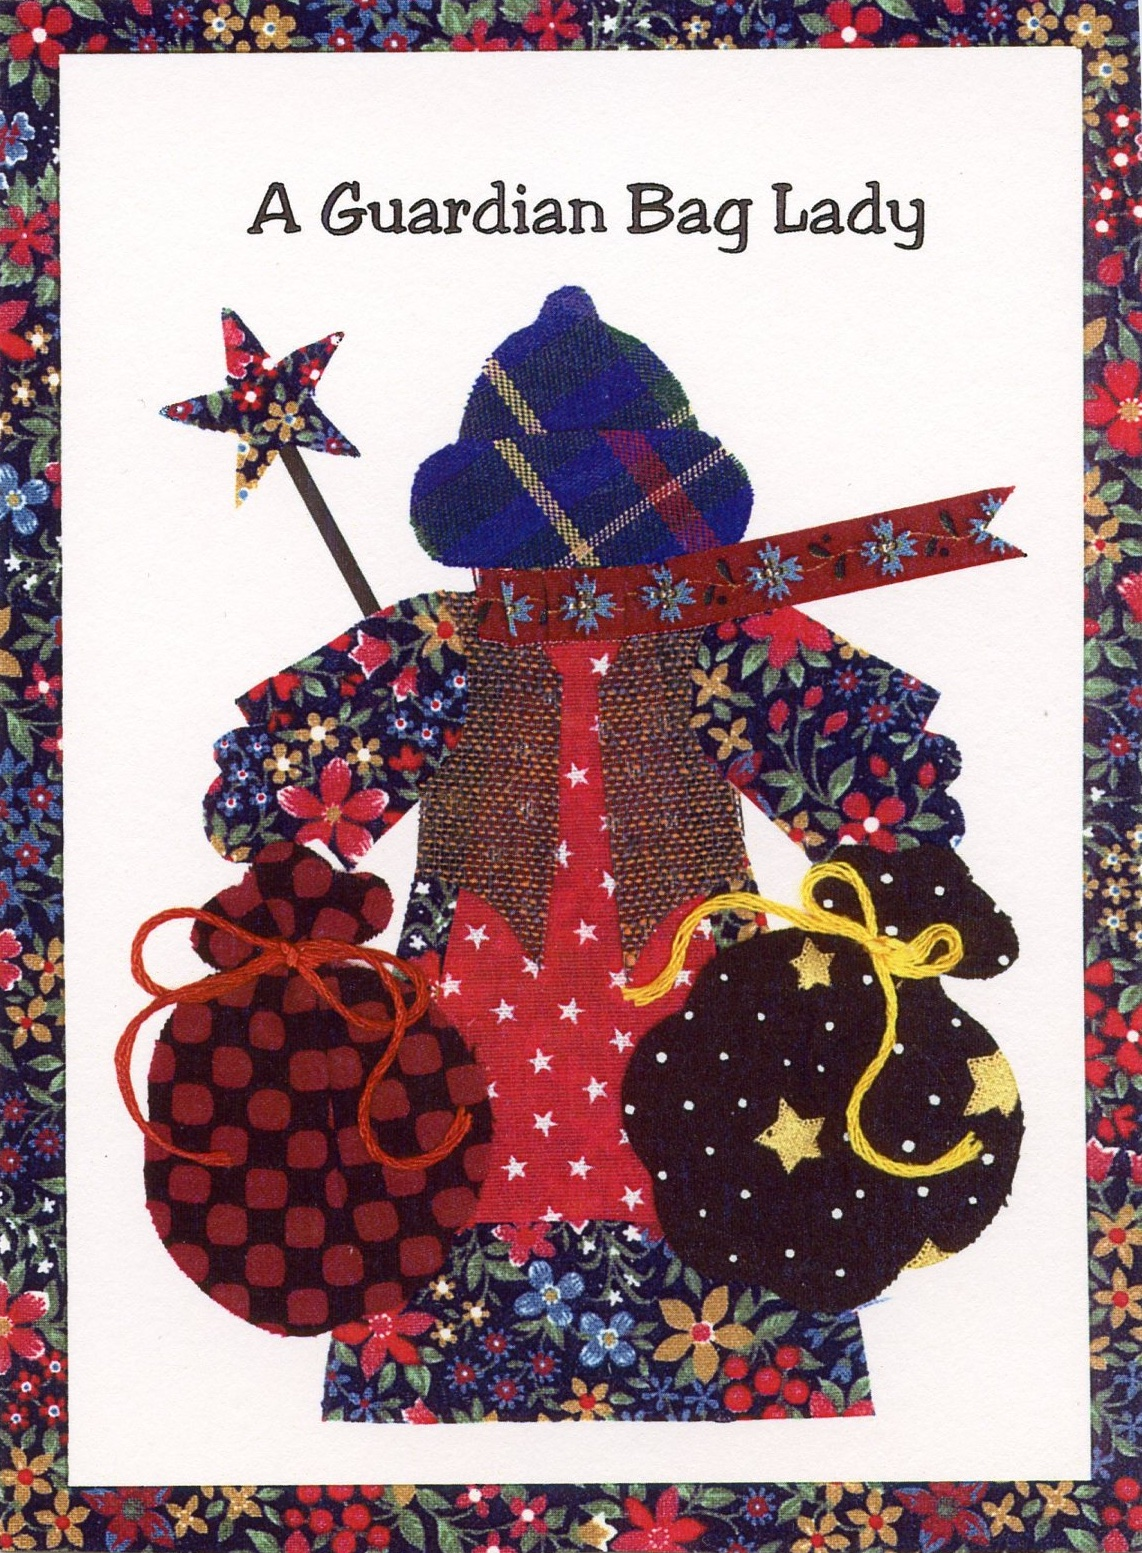 A Guardian Bag Lady-KariCates.jpg